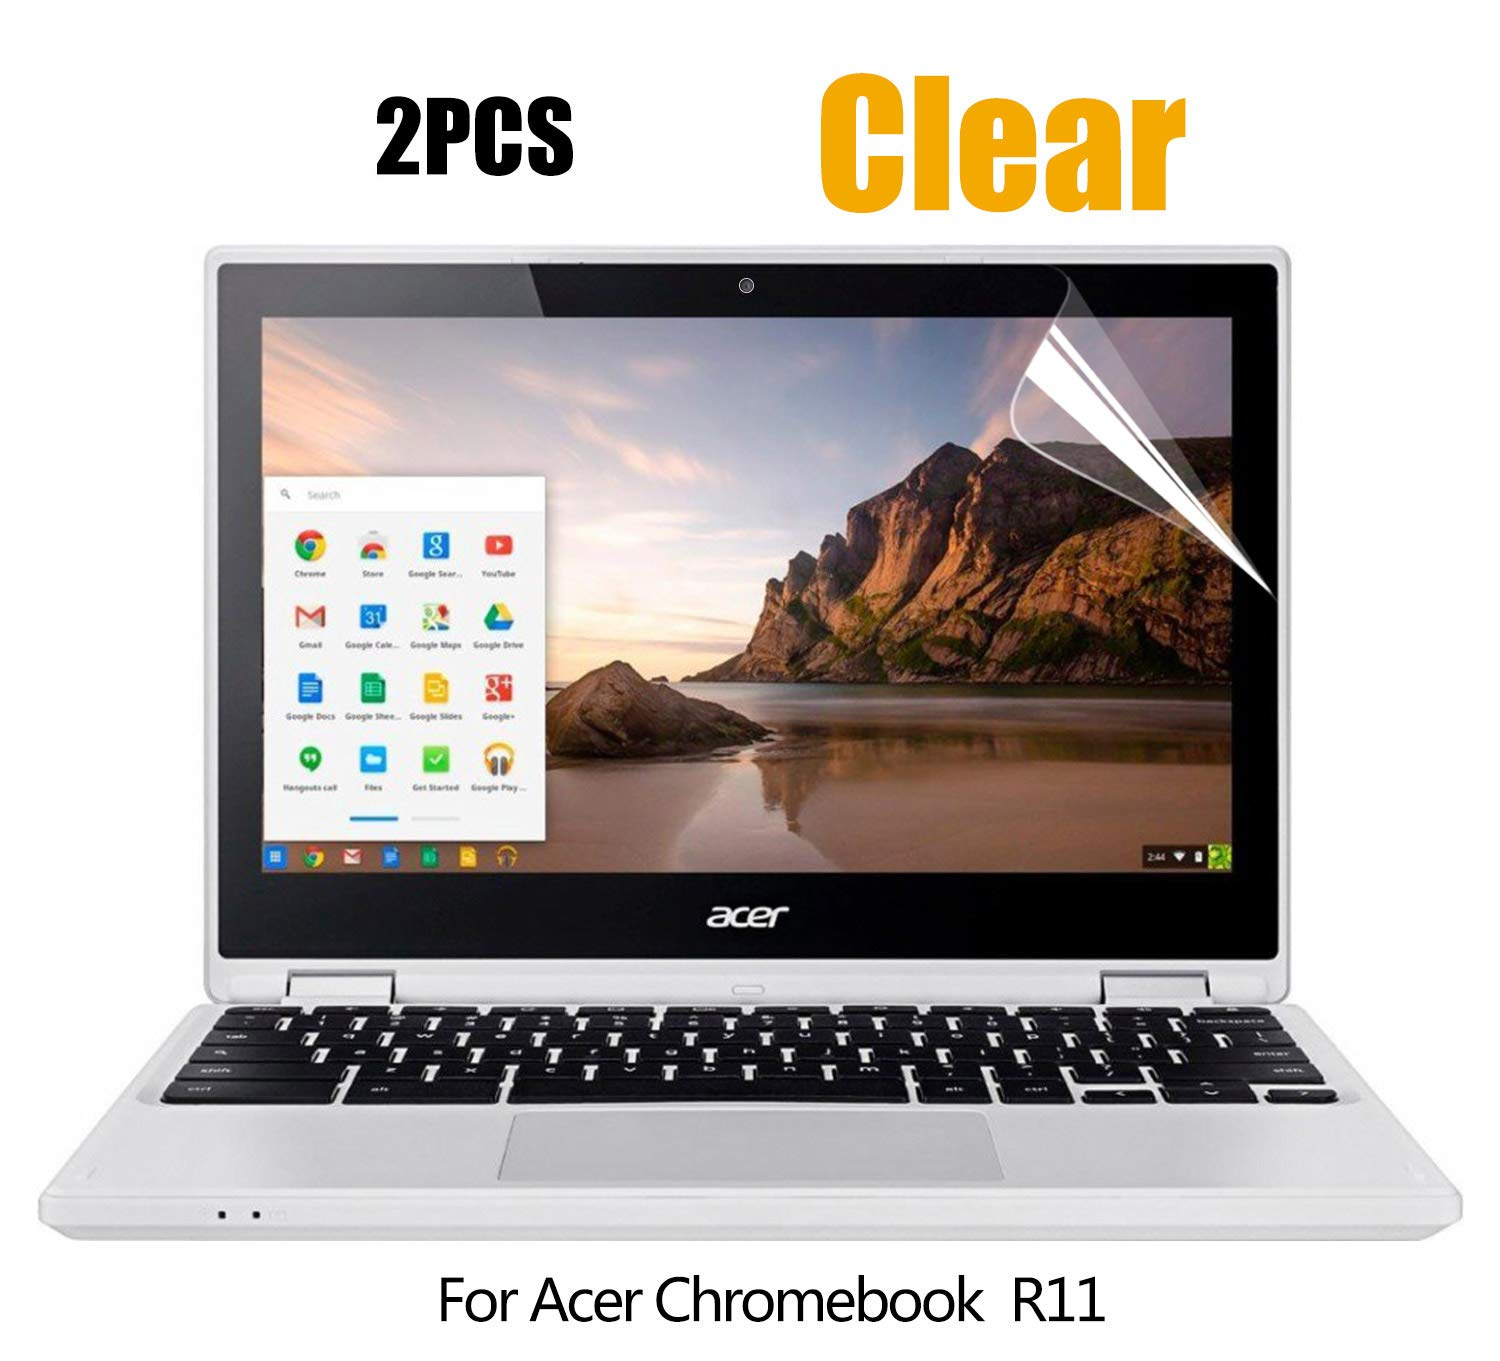 (2PCS Pack) Acer Chromebook R 11 Screen Protector Anti-Glare Anti-Scratch for Acer Chromebook R 11 Convertible 11.6 inch CB5-132T / 2017 Newest Acer Premium R11 Convertible 11.6 inch, 2-Piceces/Pack CaseBuy FDASFSAF